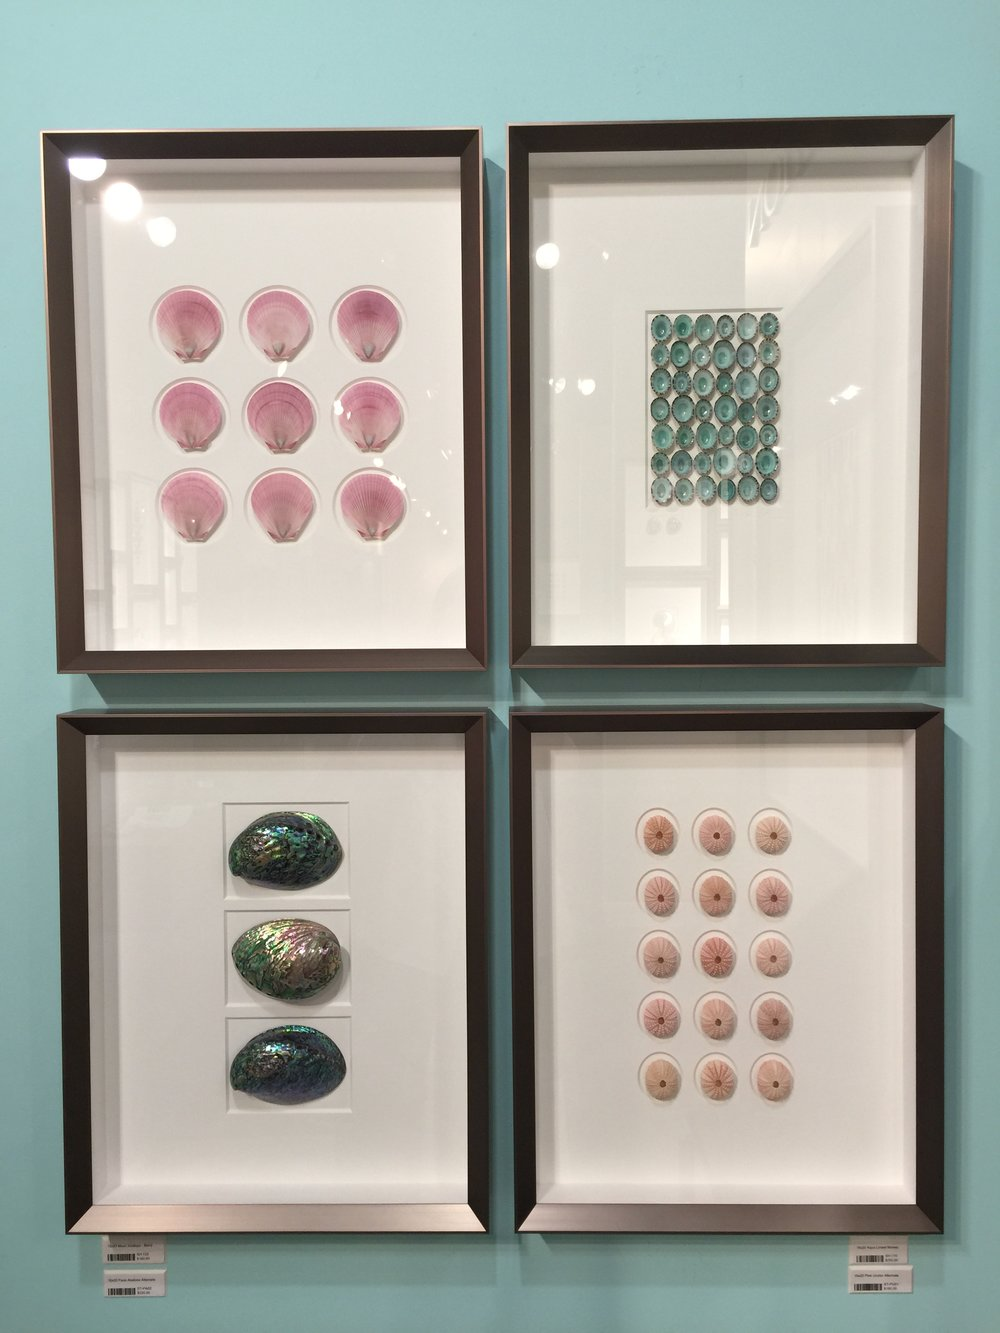 Shells mounted as art by Pheromone